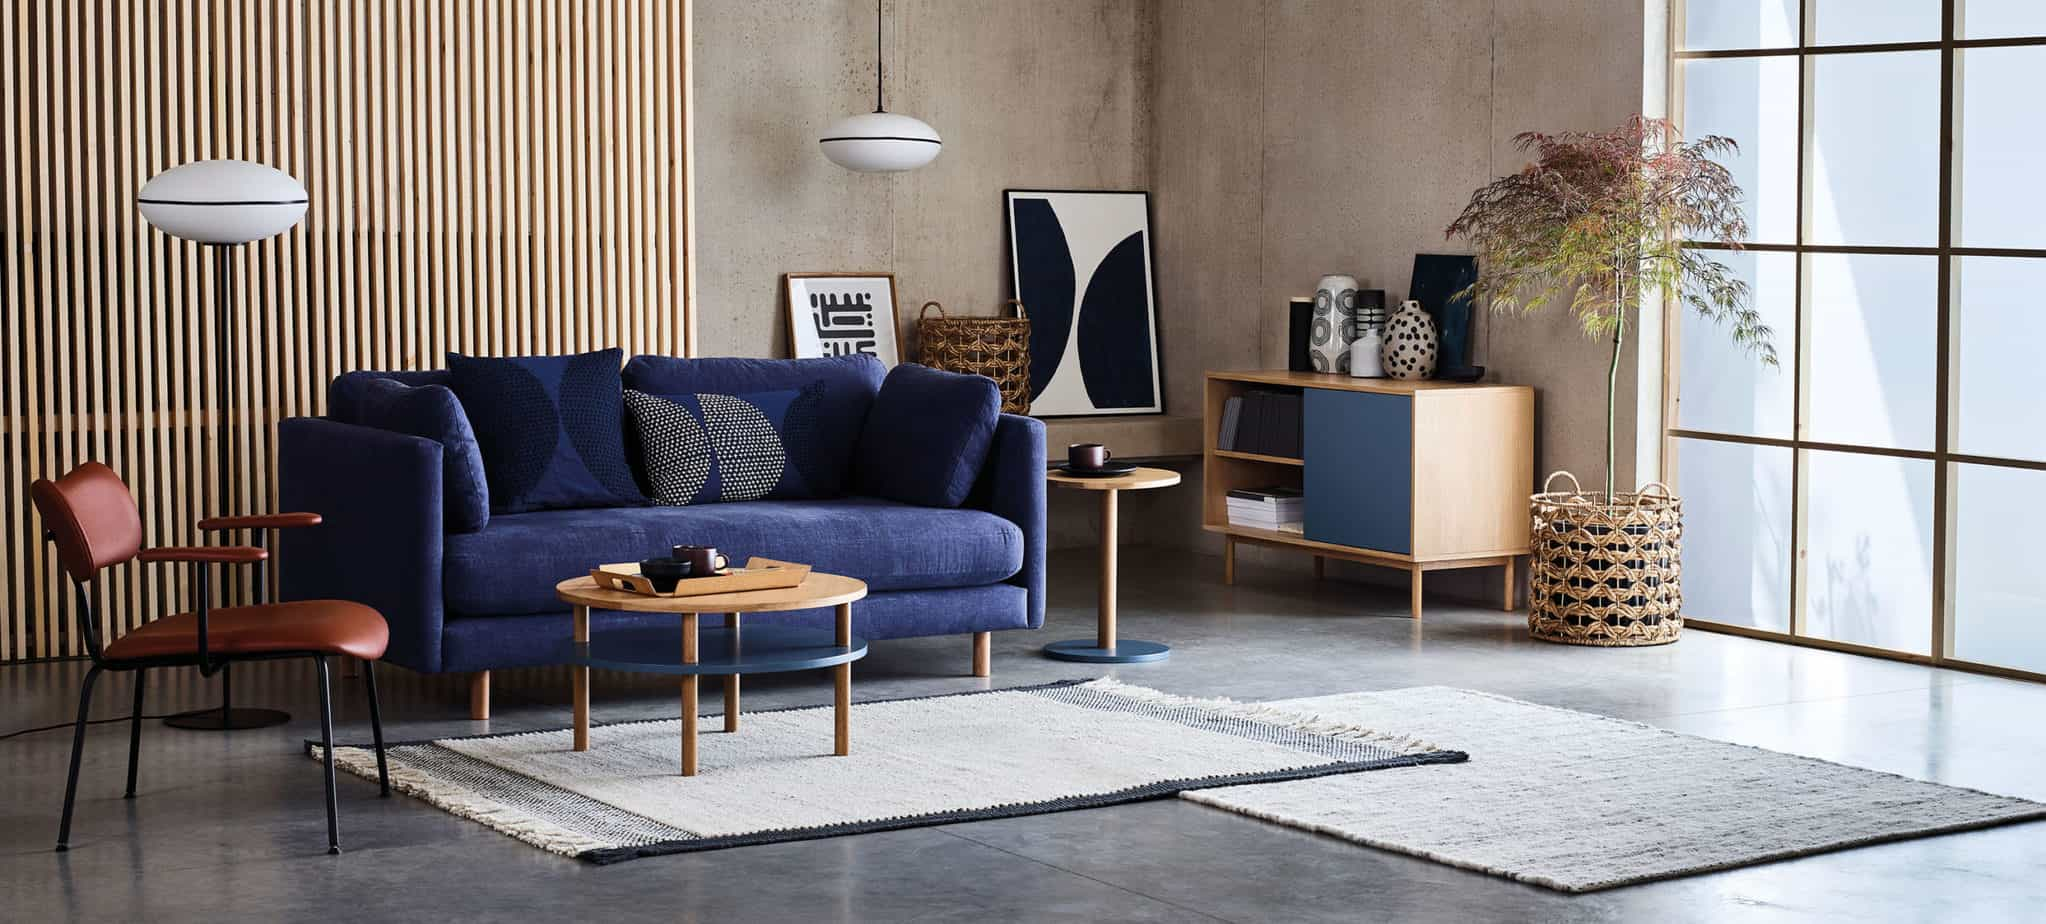 best trends among living room furniture 2021 statement sofa